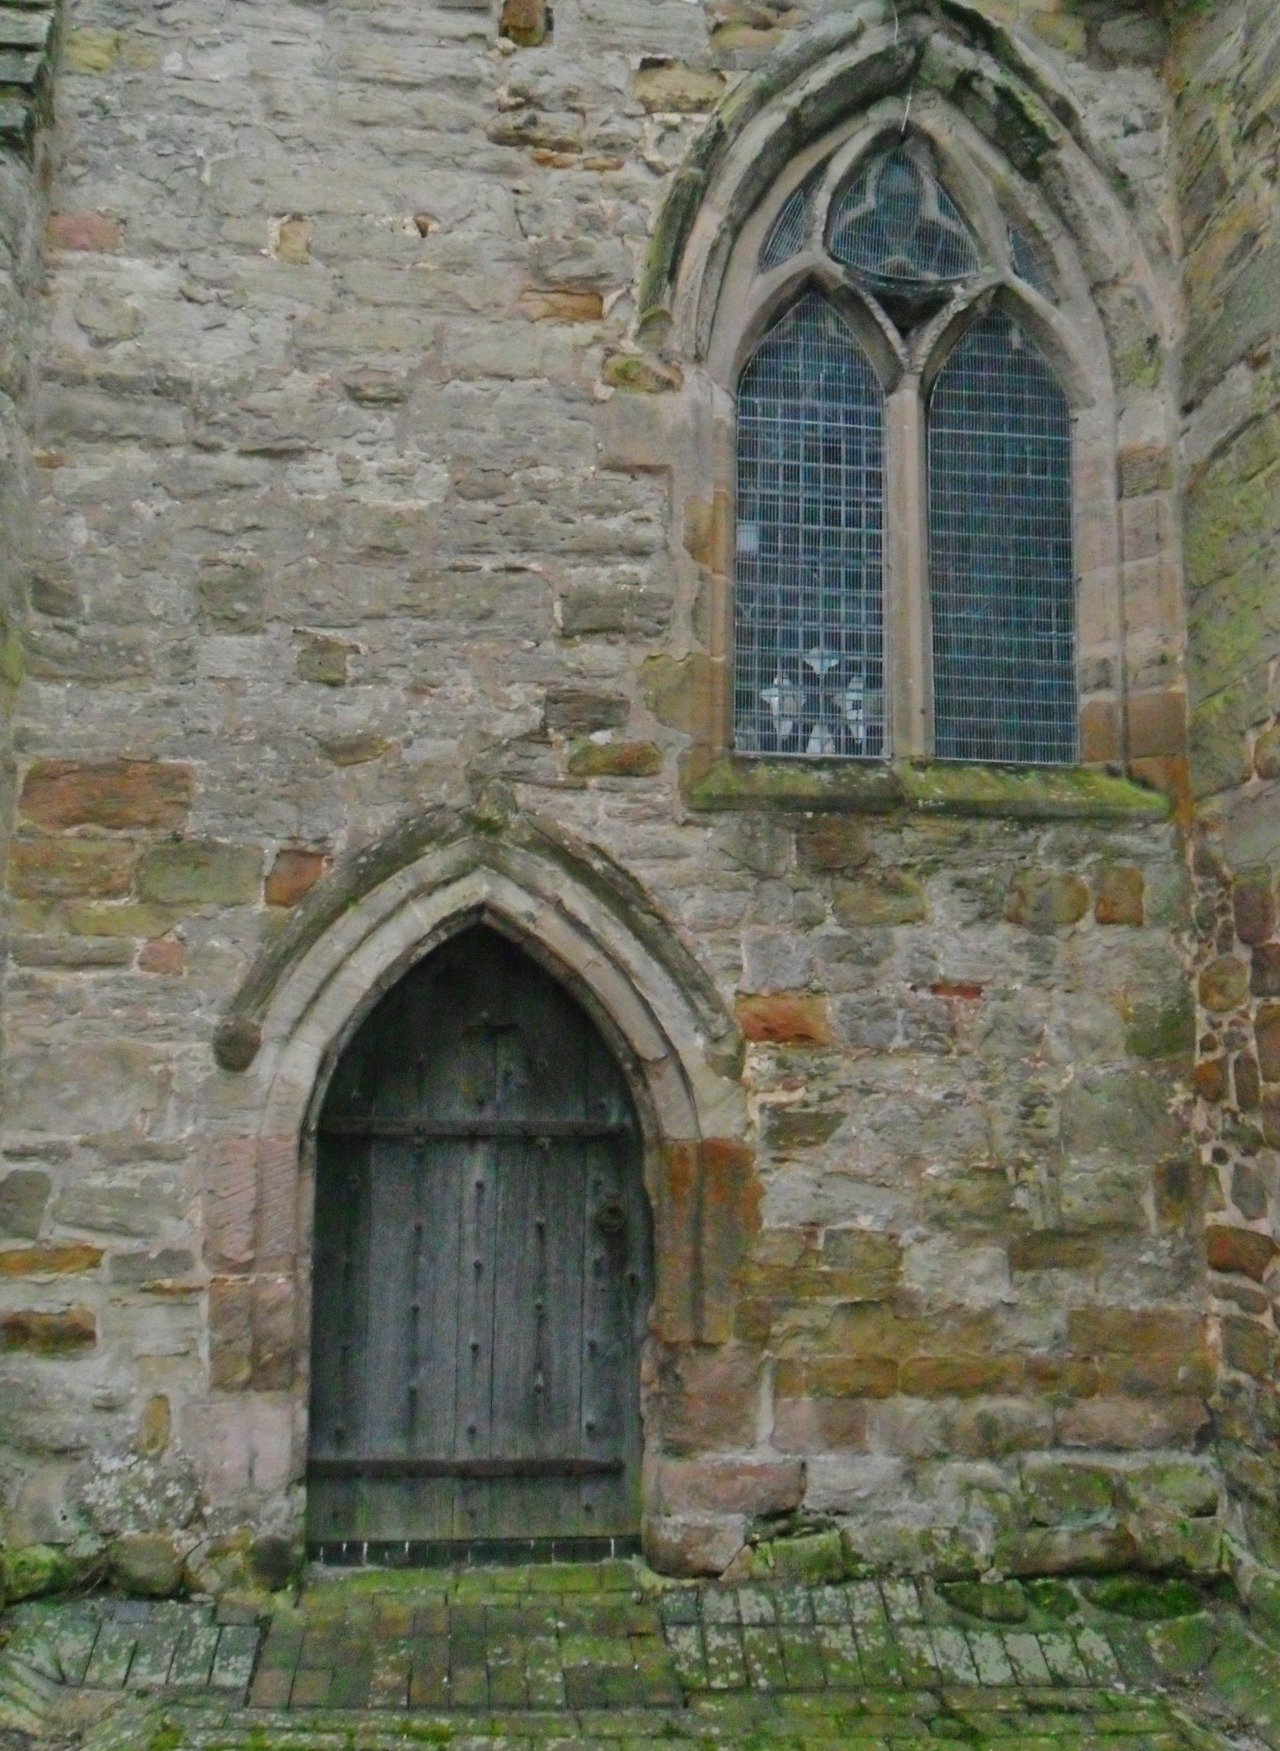 Eroded arched doorway and window of the 12th Century parish Church of St Peter & St Paul at Kingsbury, Warwickshire, England